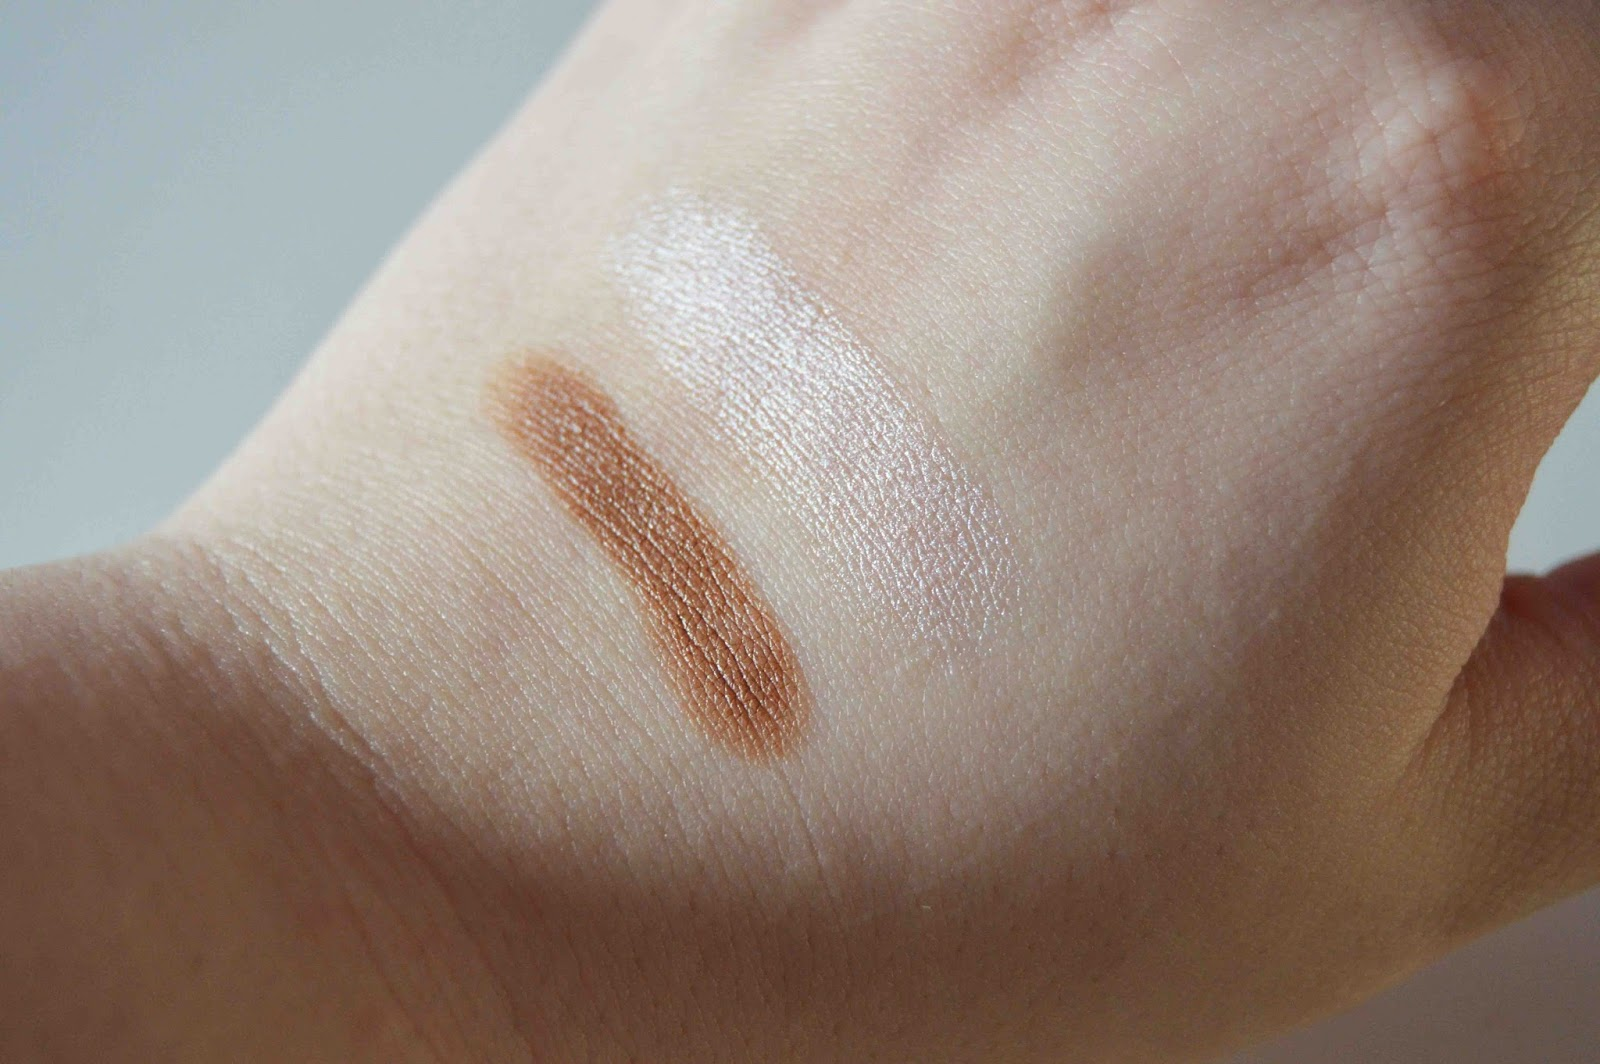 chubby stick contour highlight Clinique sculpting swatches